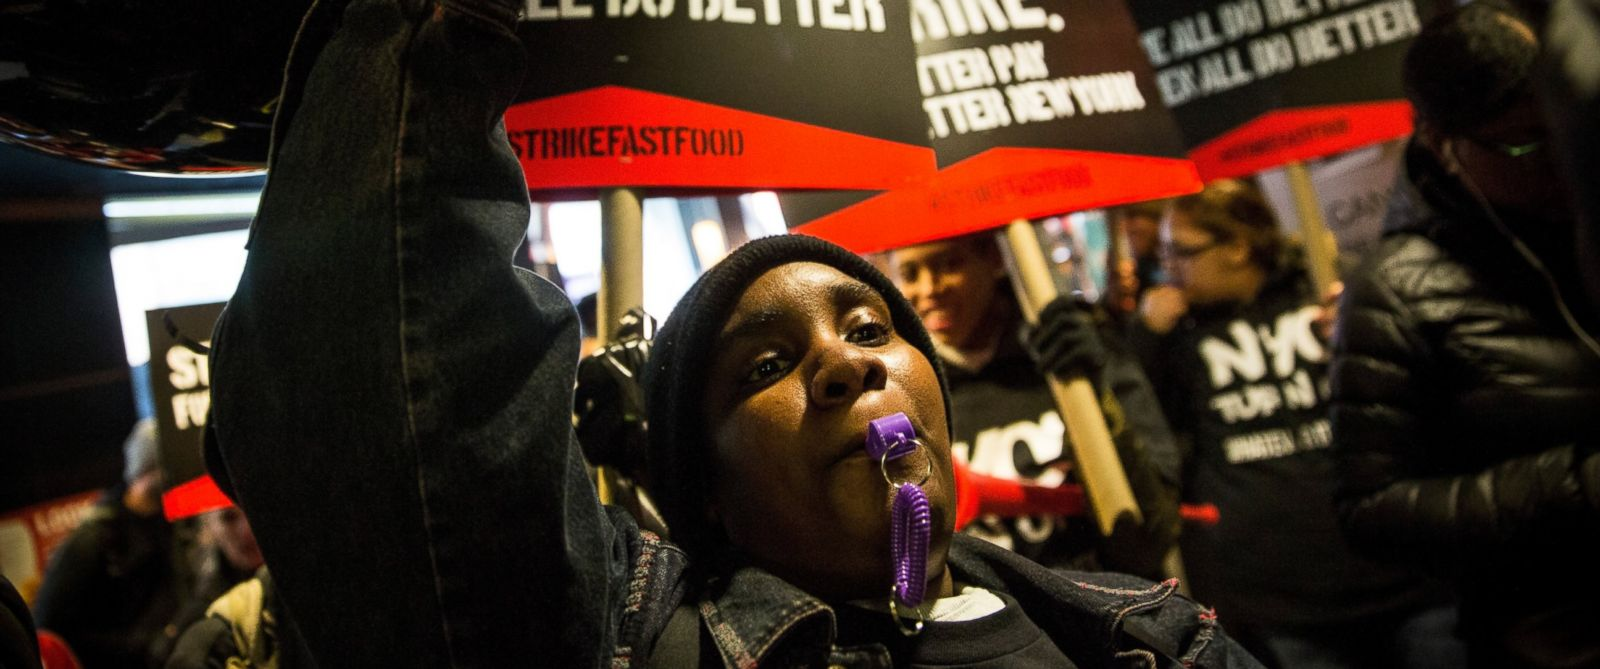 PHOTO: Protesters march through a McDonalds demanding a raise on the minimum wage to $15 per hour on Dec. 4, 2014 in New York City.